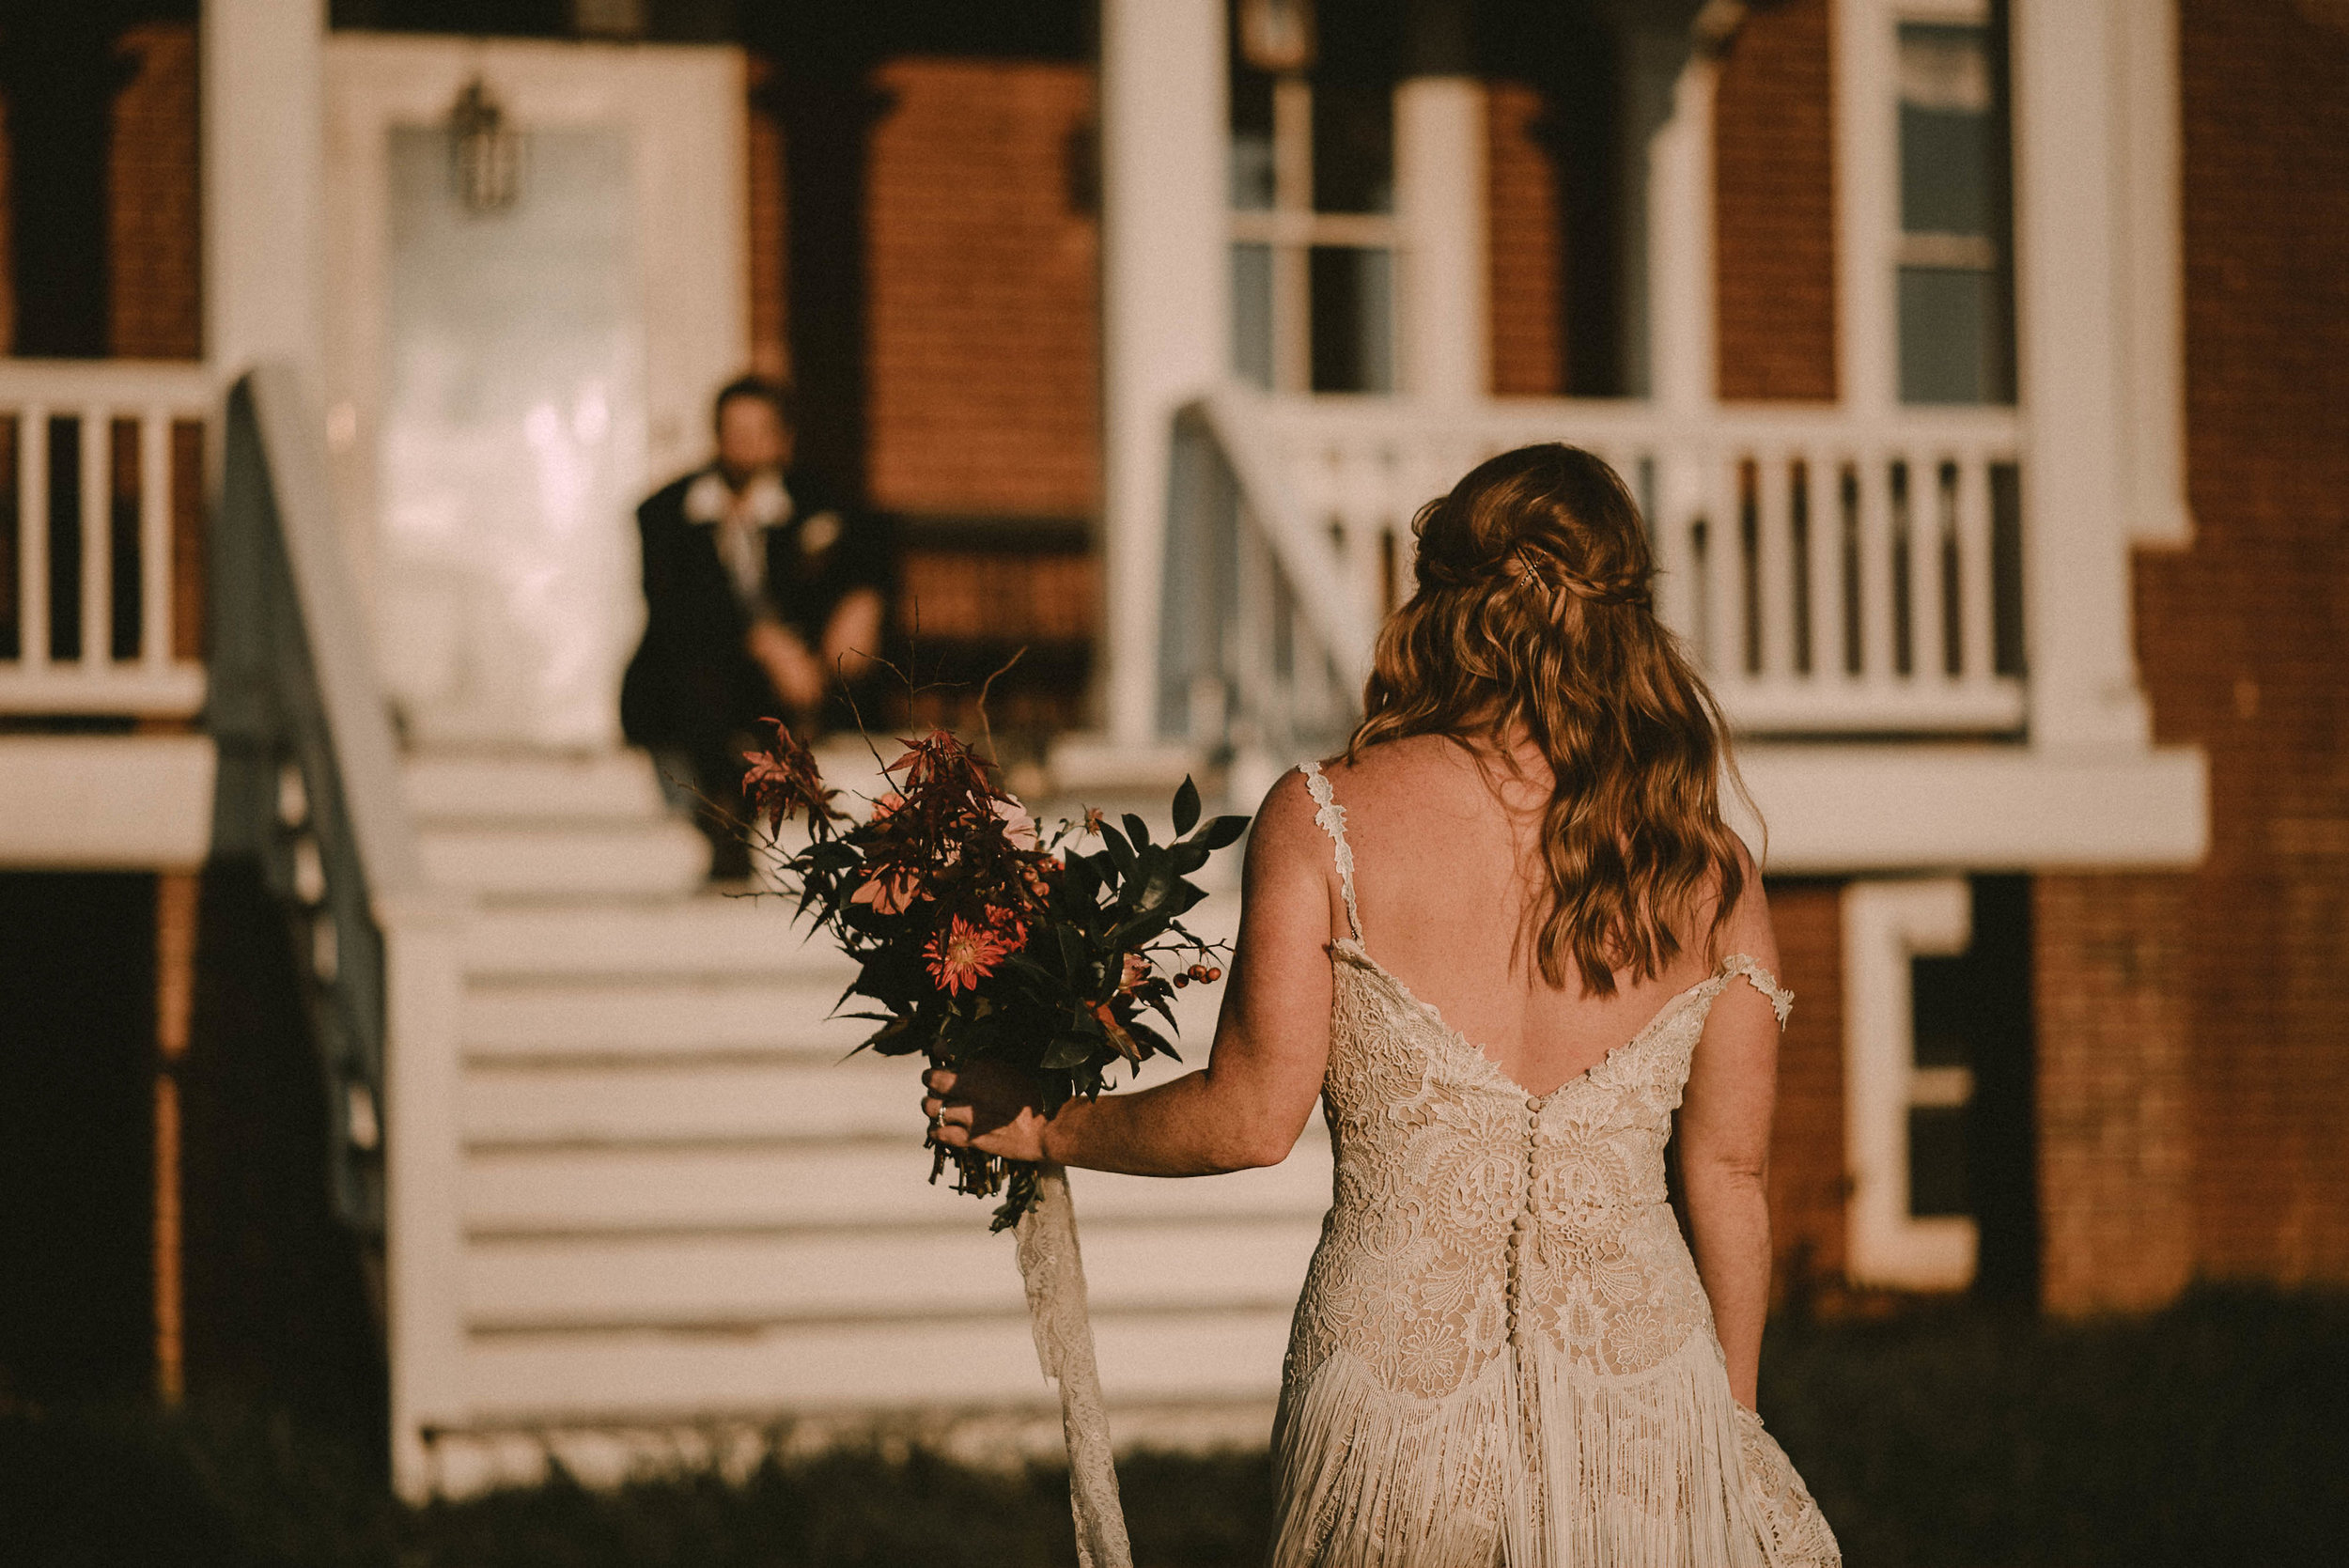 Bride approaching groom on porch